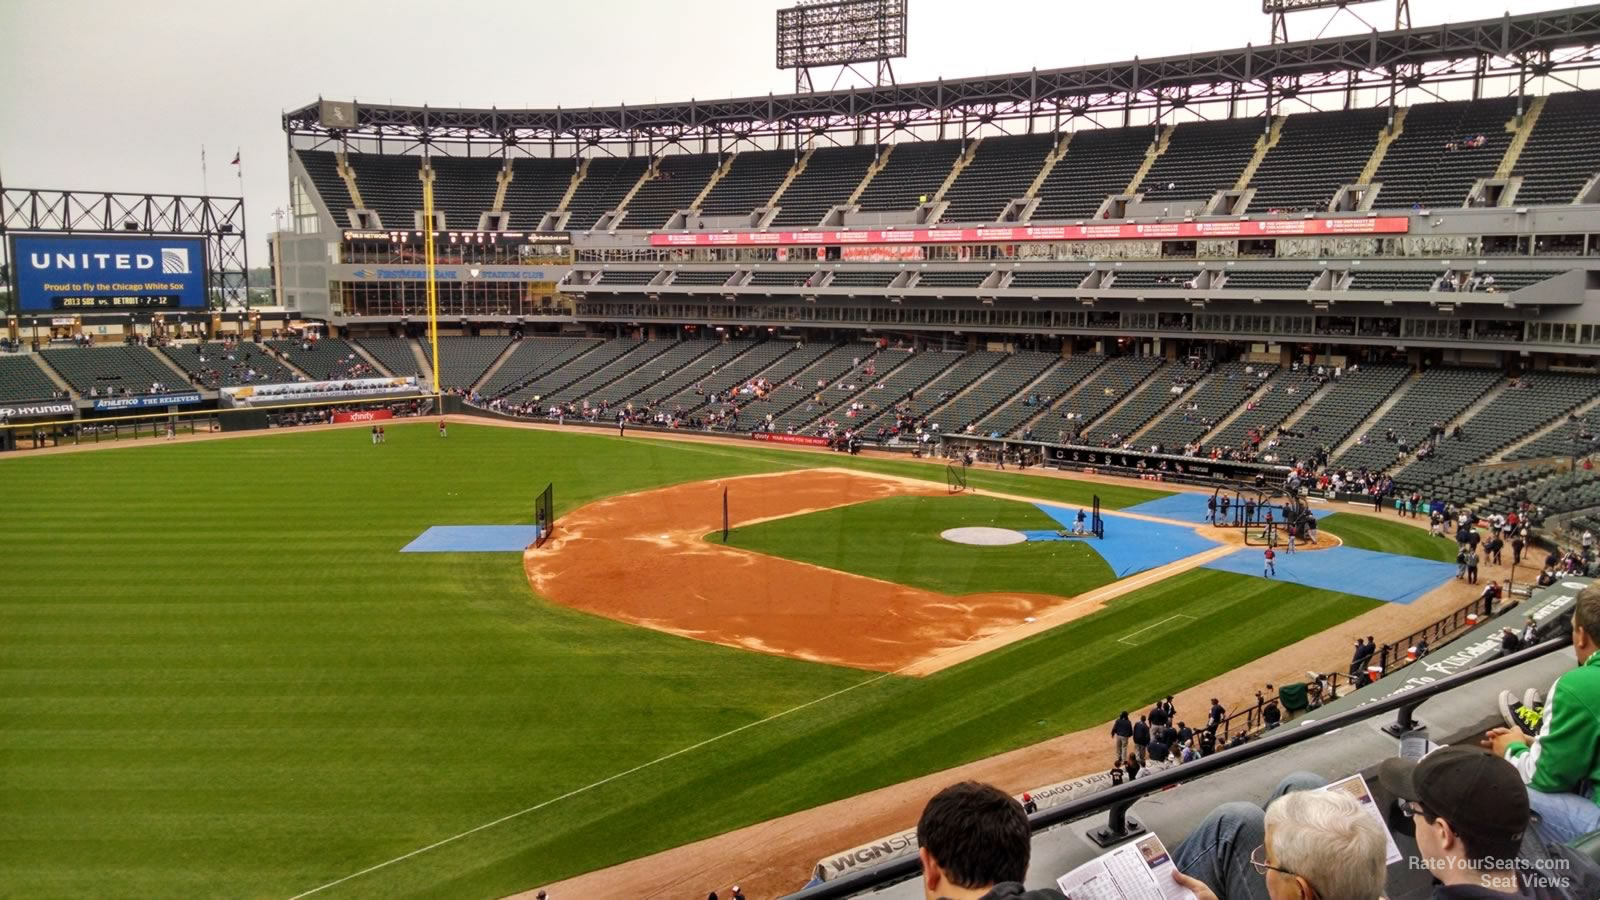 Seat View for Guaranteed Rate Field Section 348, Row 3